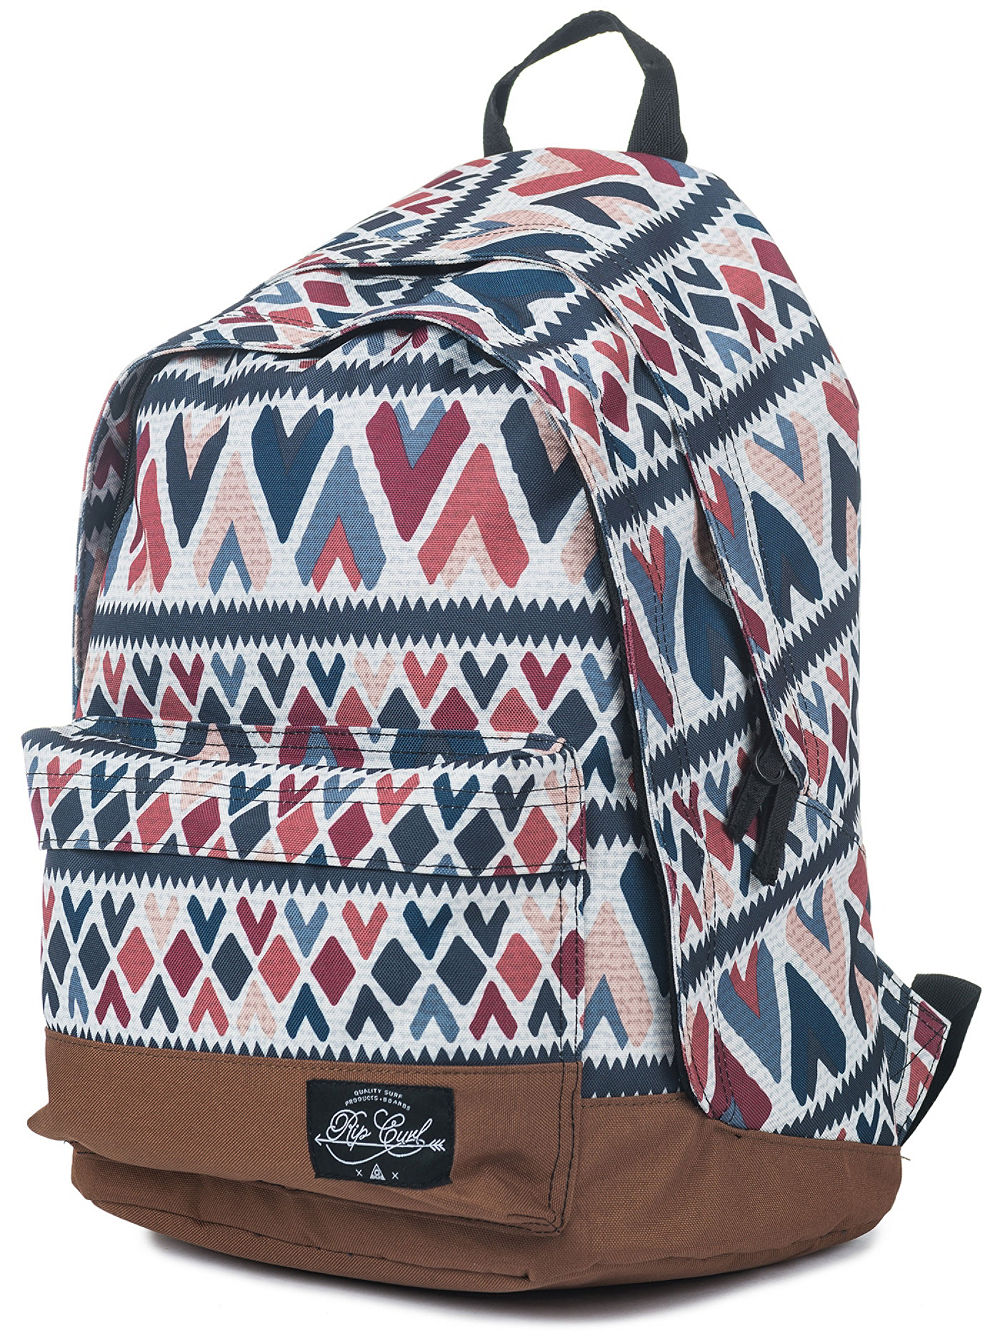 Navarro Double Dome Backpack